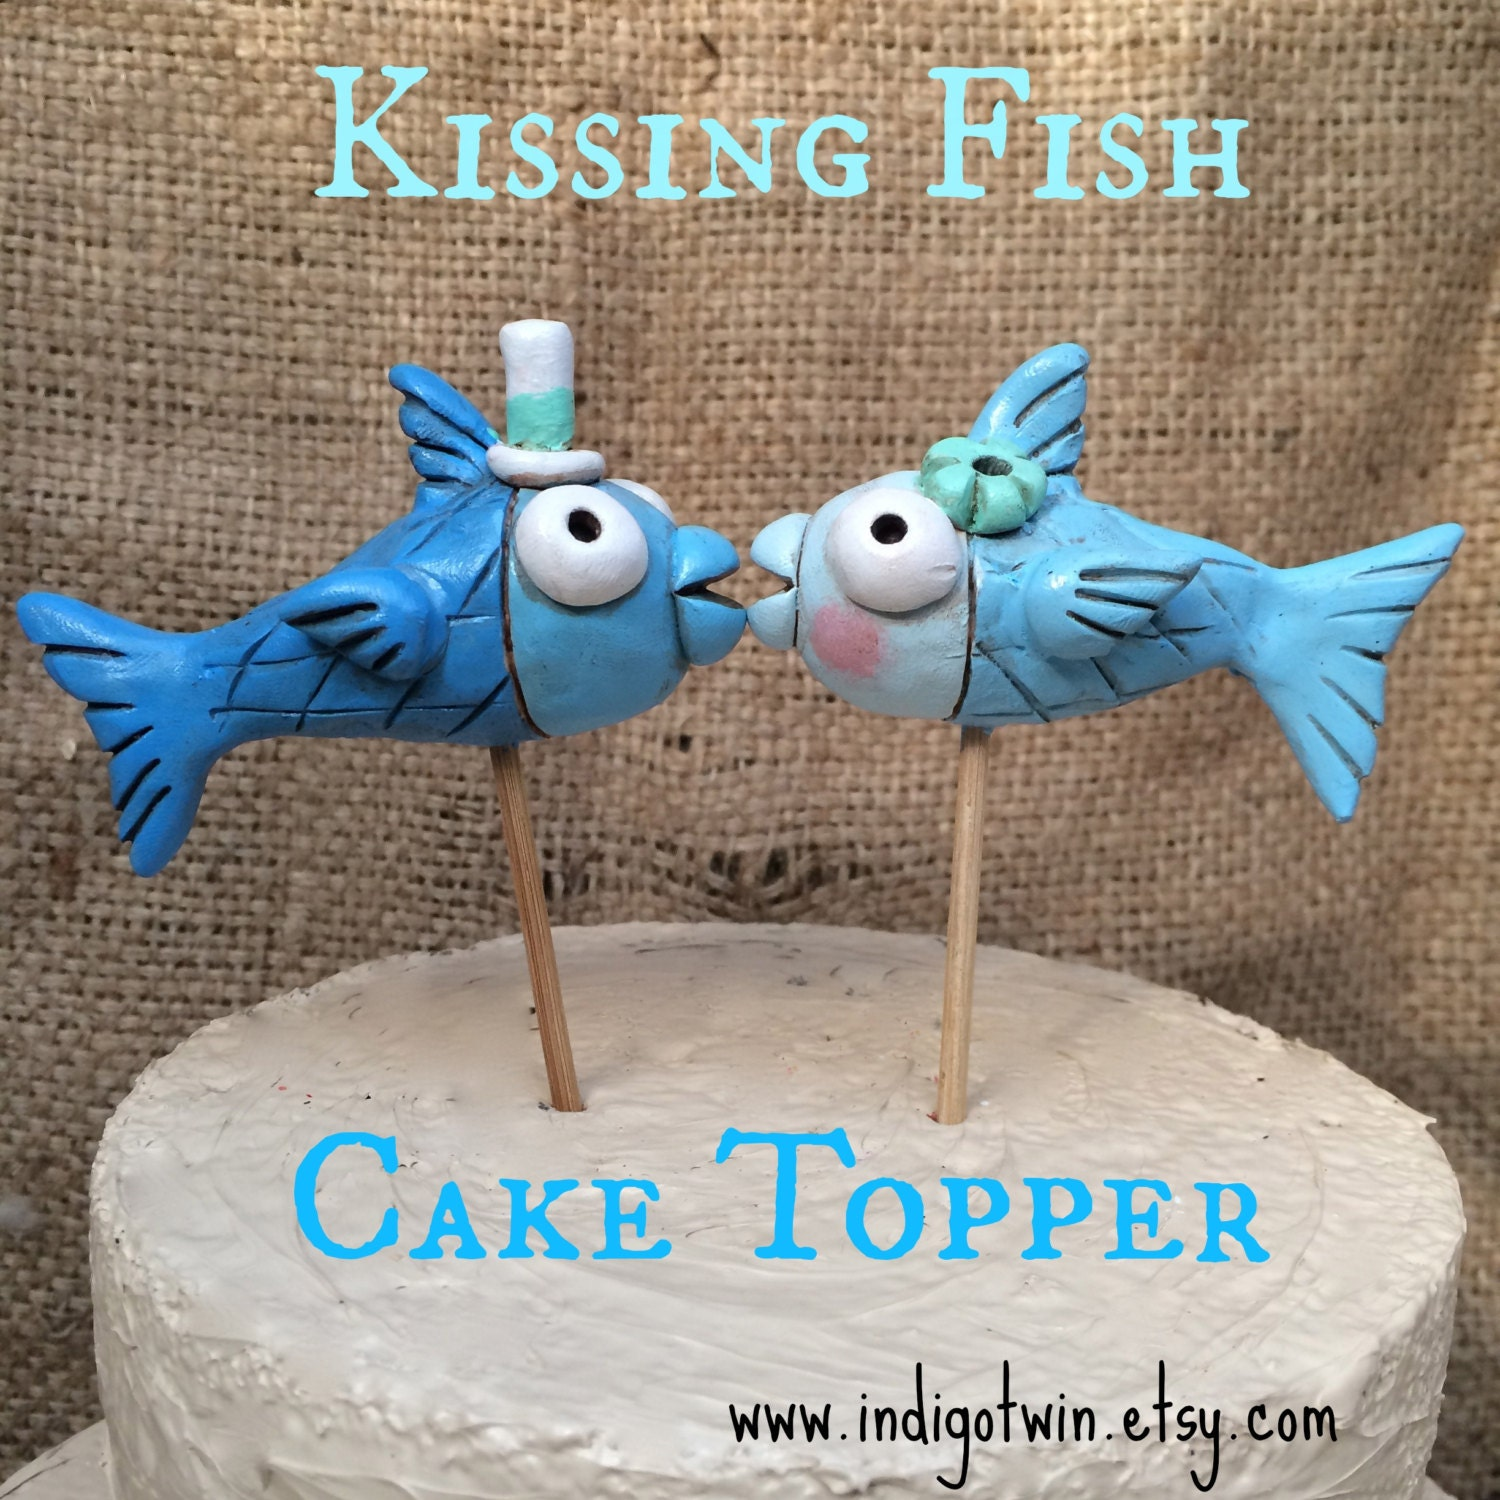 Kissing fish ornament - Blue Kissing Fish Cake Topper For Your Rustic Beach Wedding